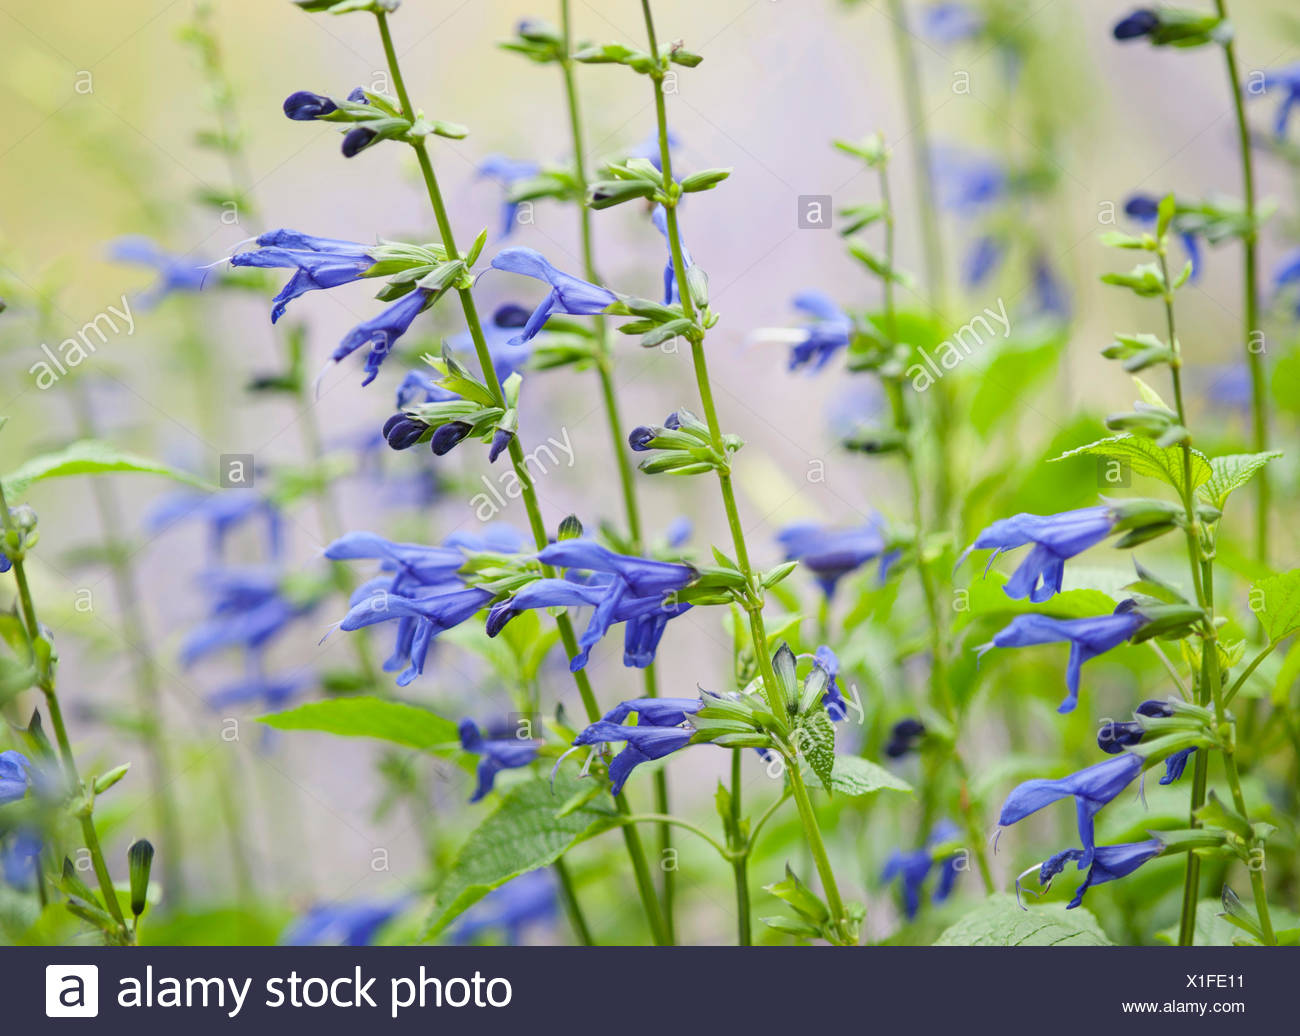 Sage, Salvia guaranitica 'Blue Enigma', Blue subject. - Stock Image